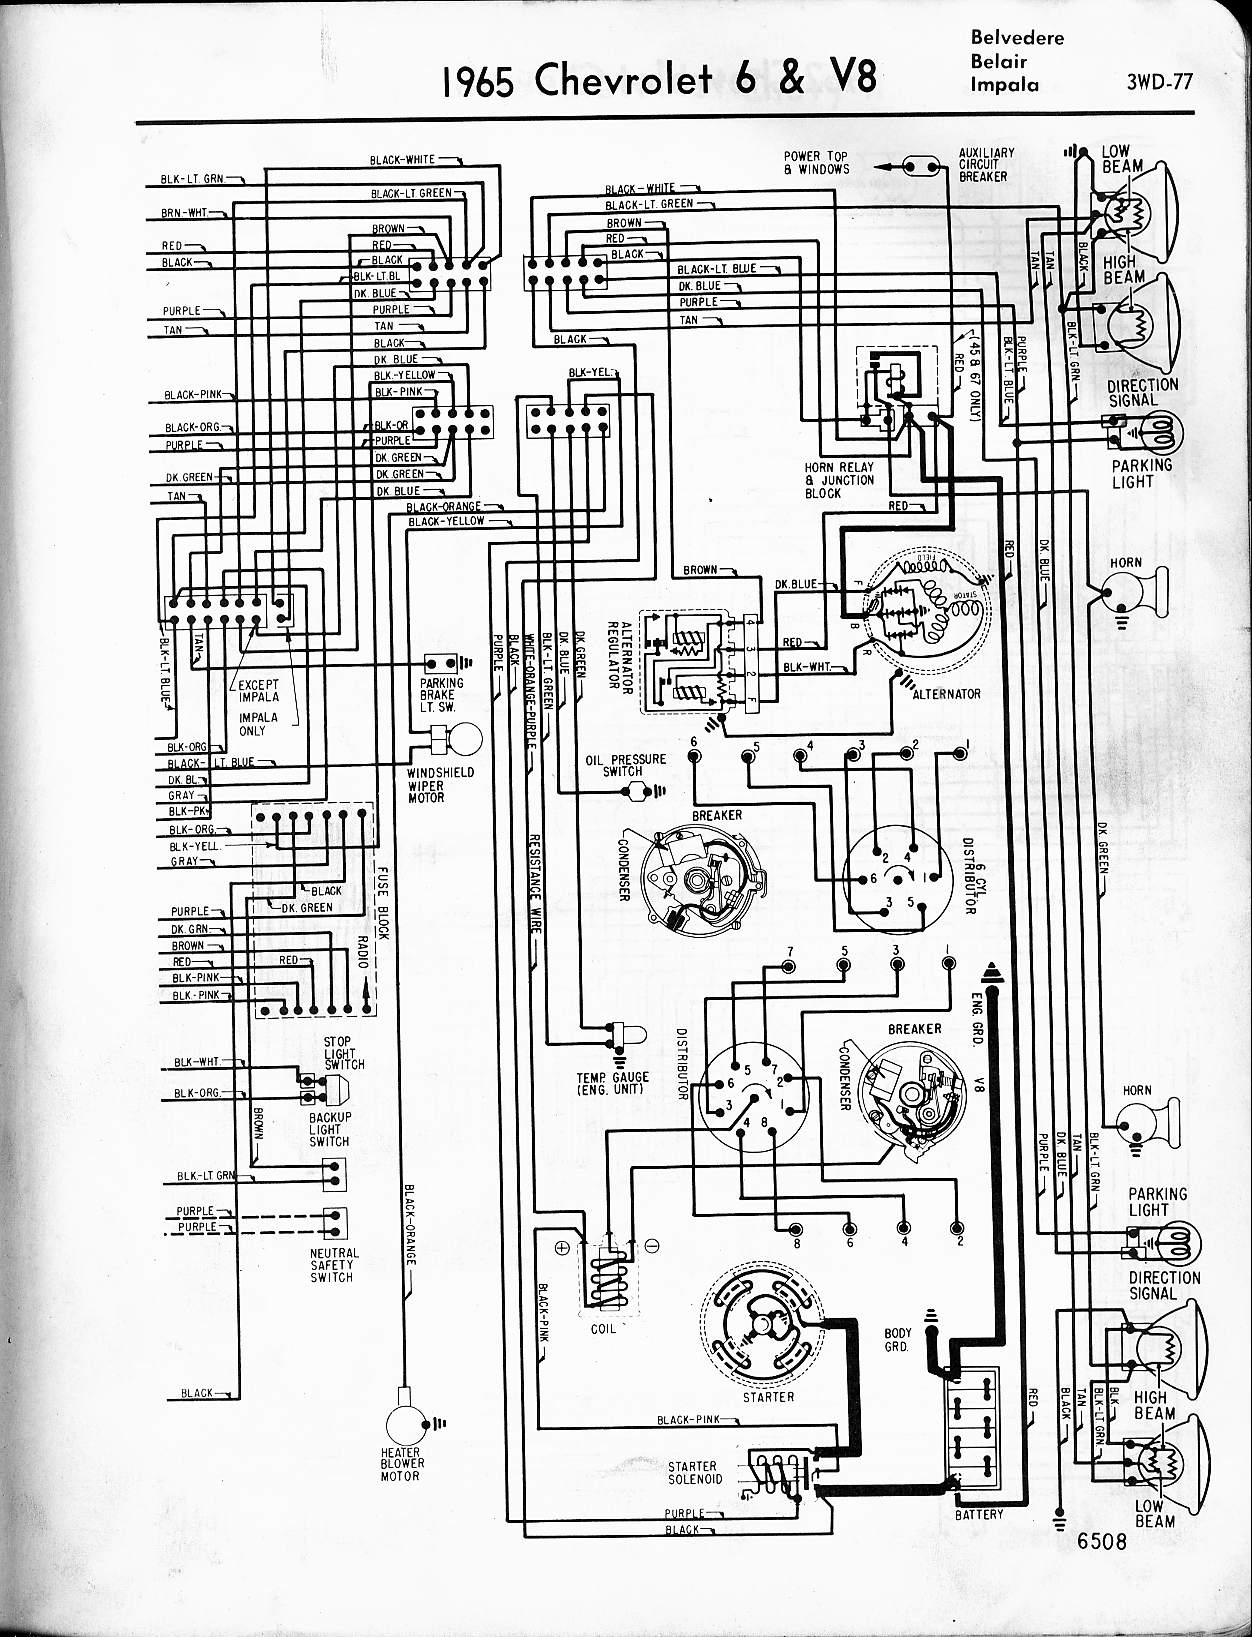 MWireChev65_3WD 077 chevy diagrams Ford Alternator Wiring Diagram at bayanpartner.co